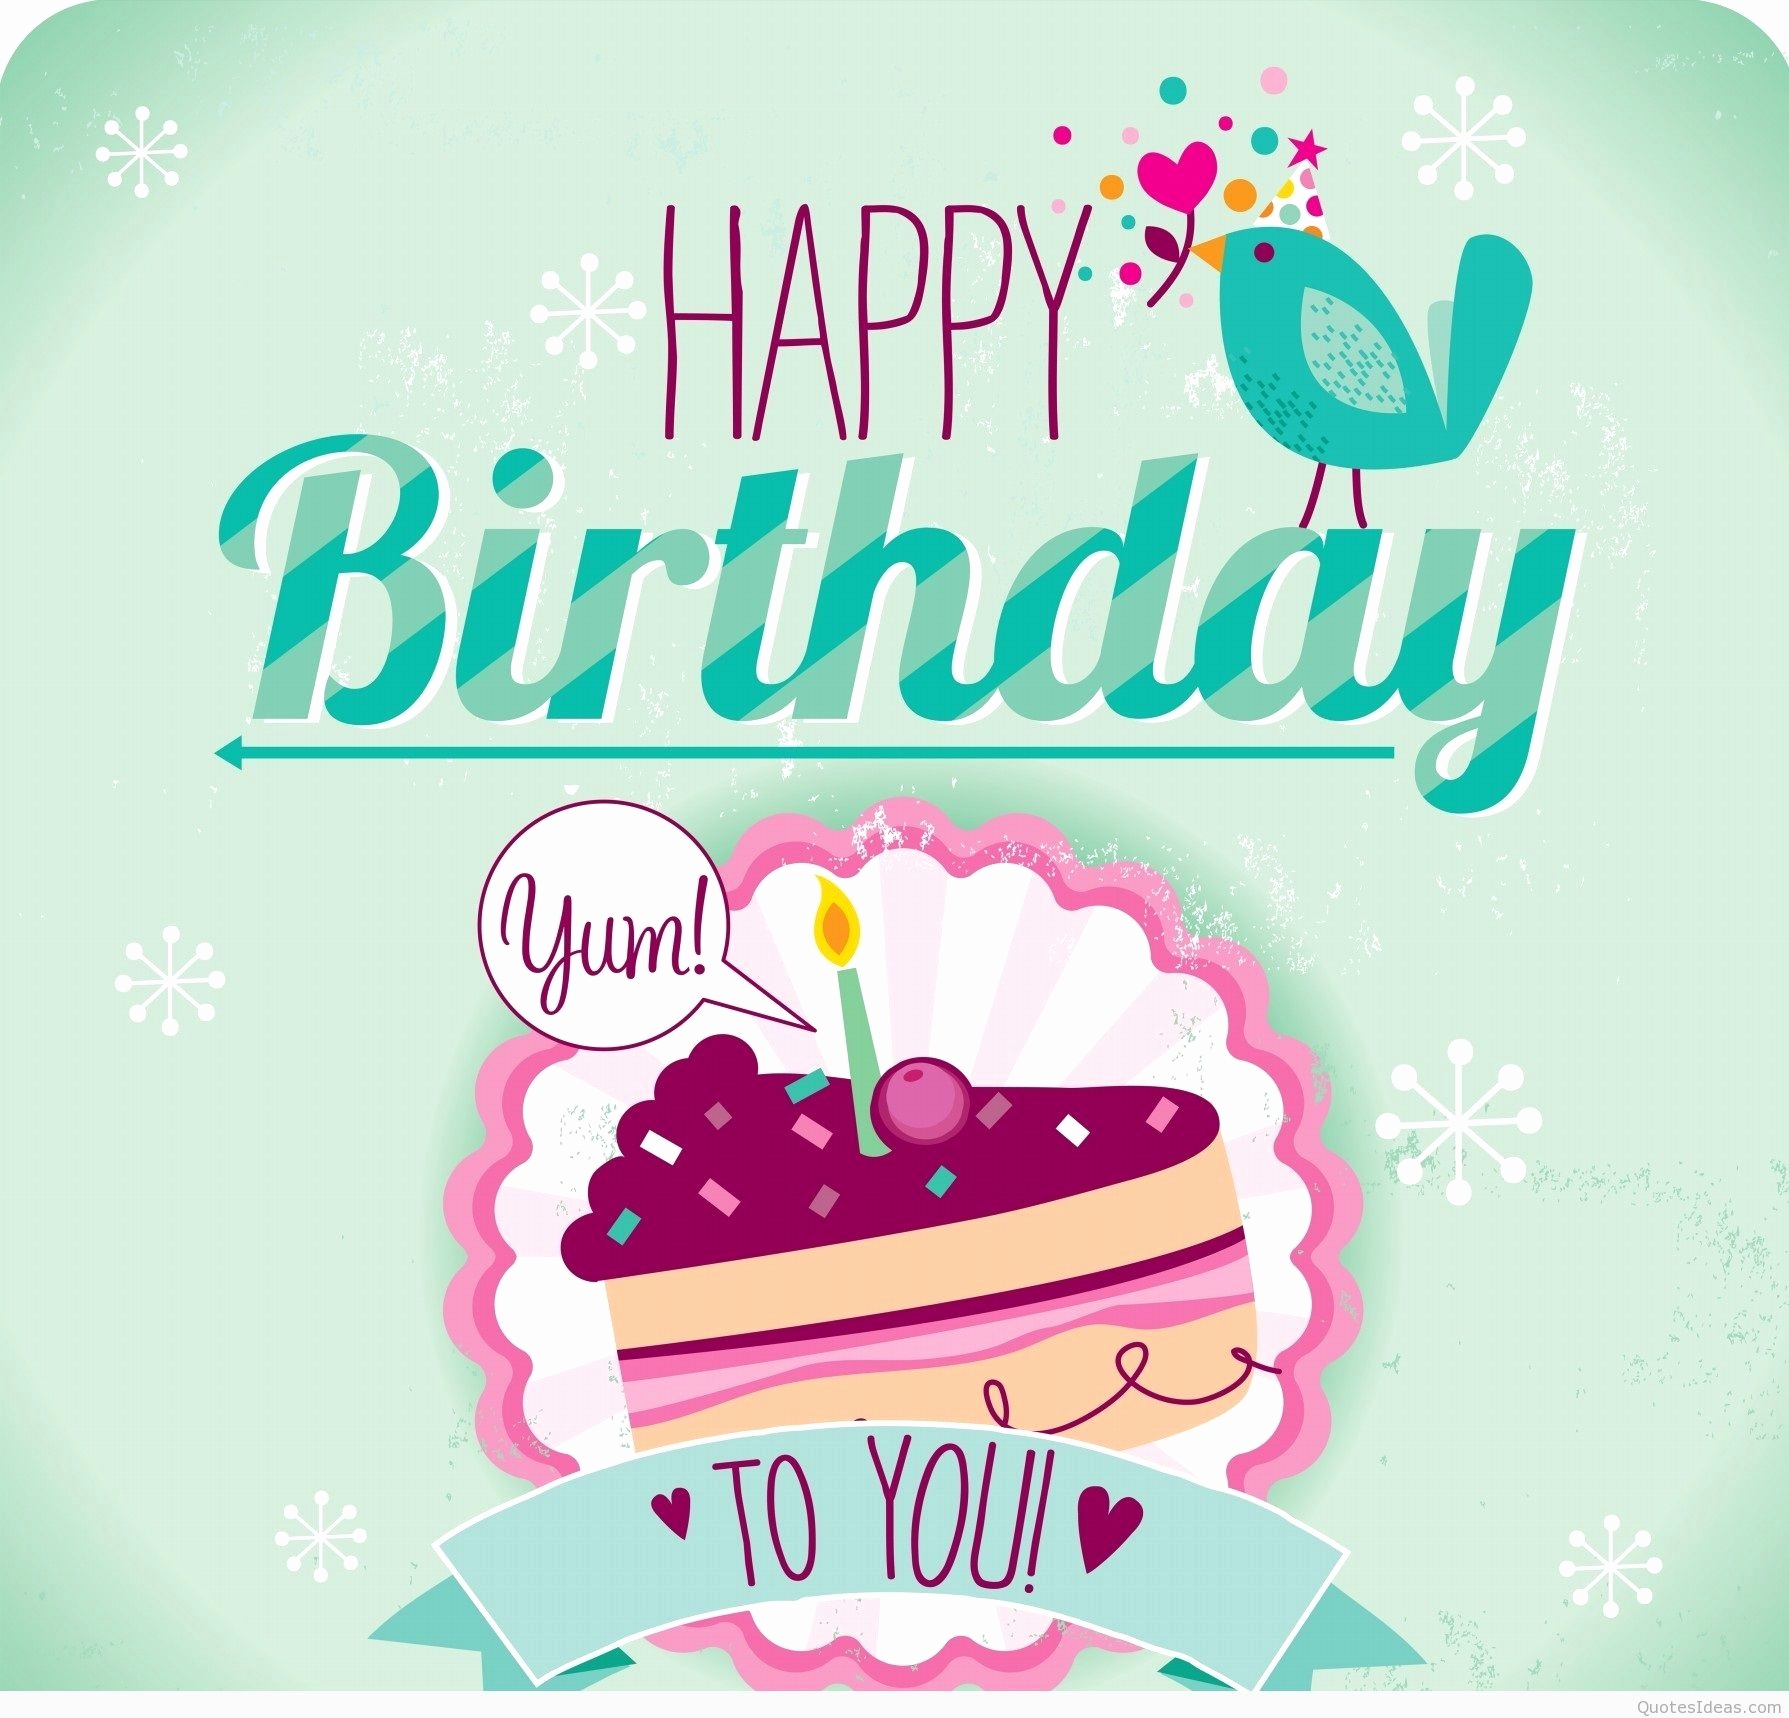 34th birthday card ; 34th-birthday-card-beautiful-happy-birthday-of-34th-birthday-card